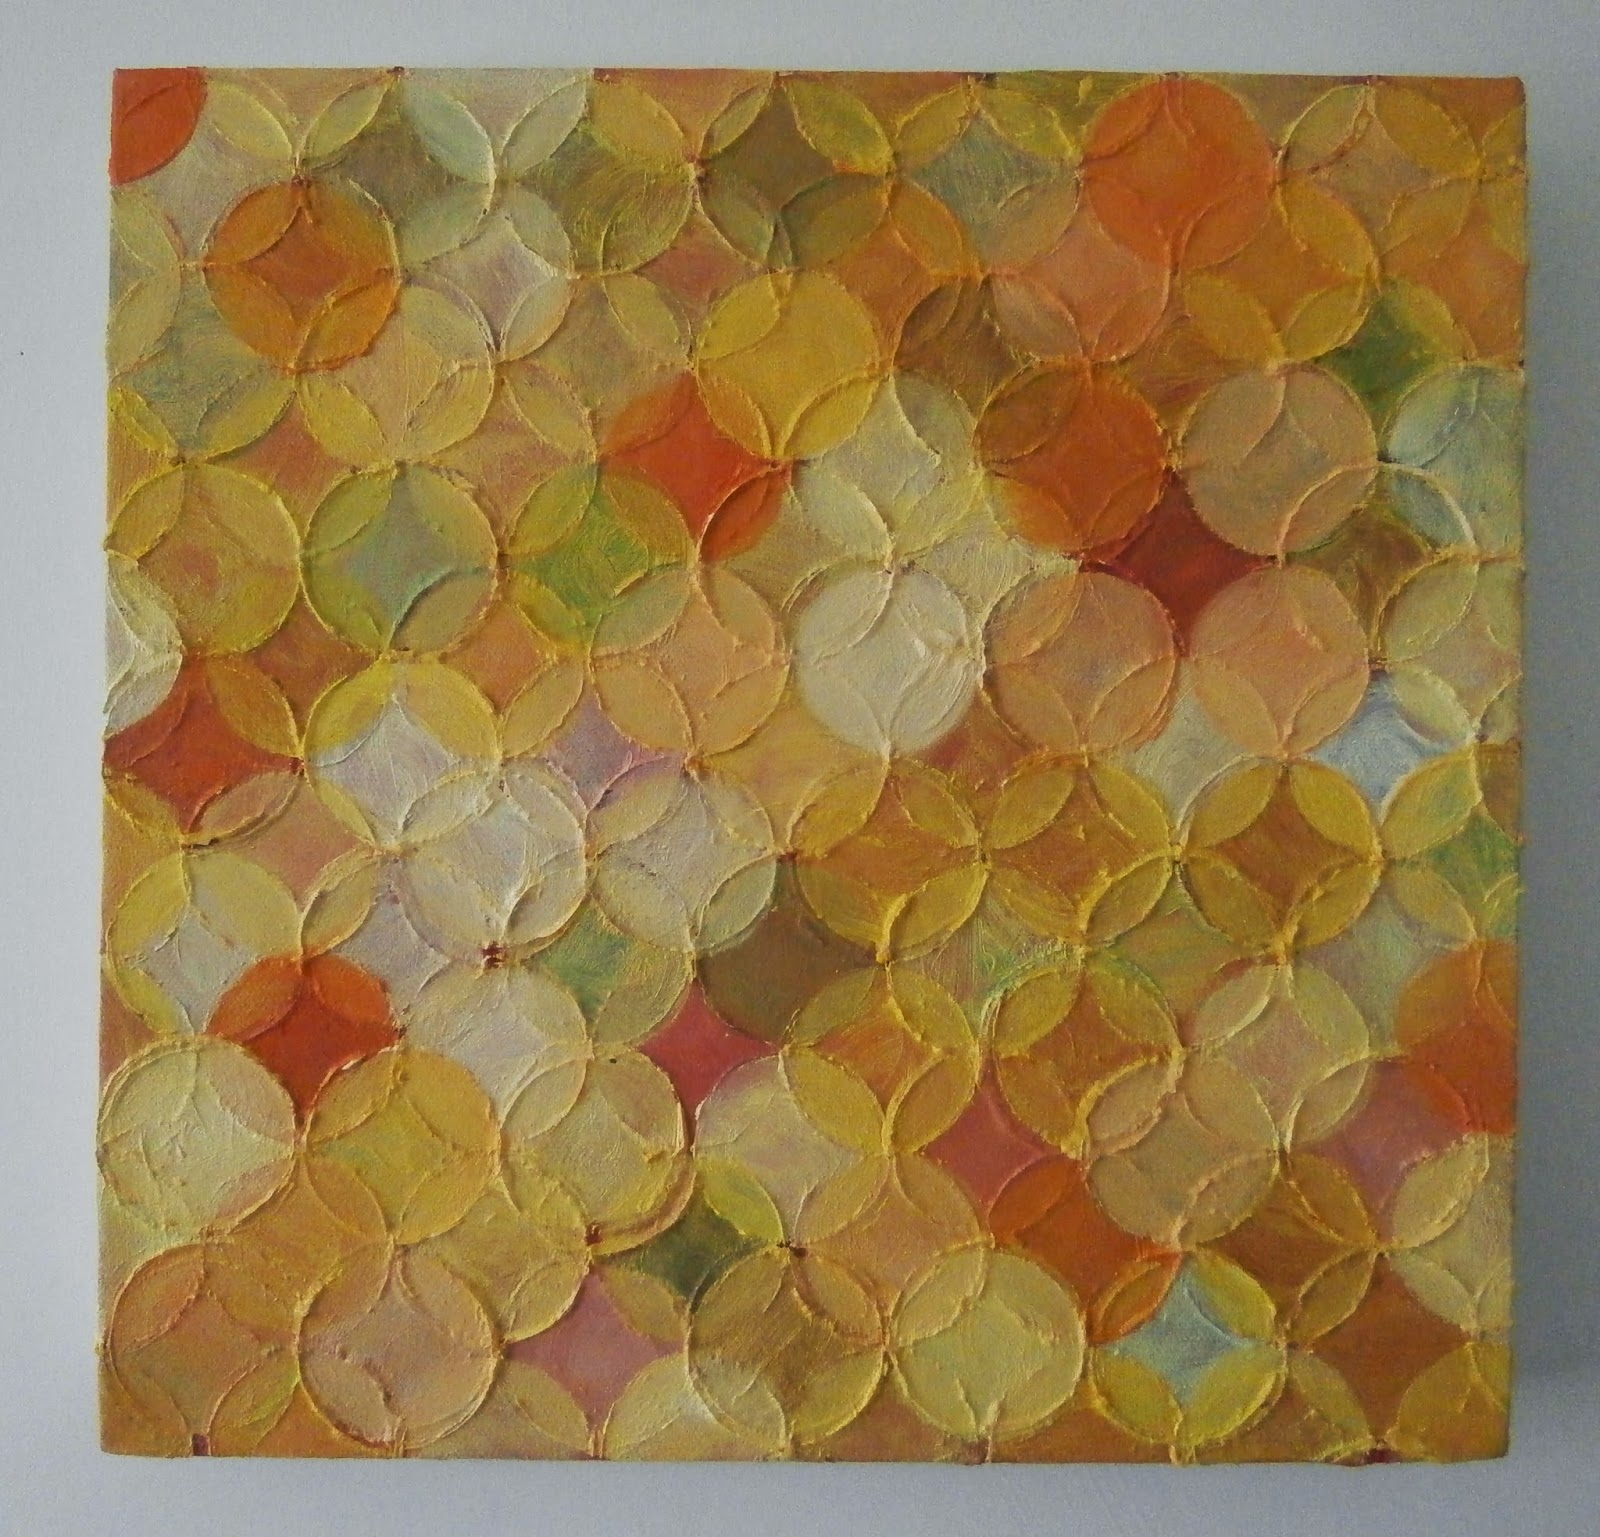 yellow circle painting, kate mackay, art, geometric abstraction, non objective, fire station gallery, dubbo